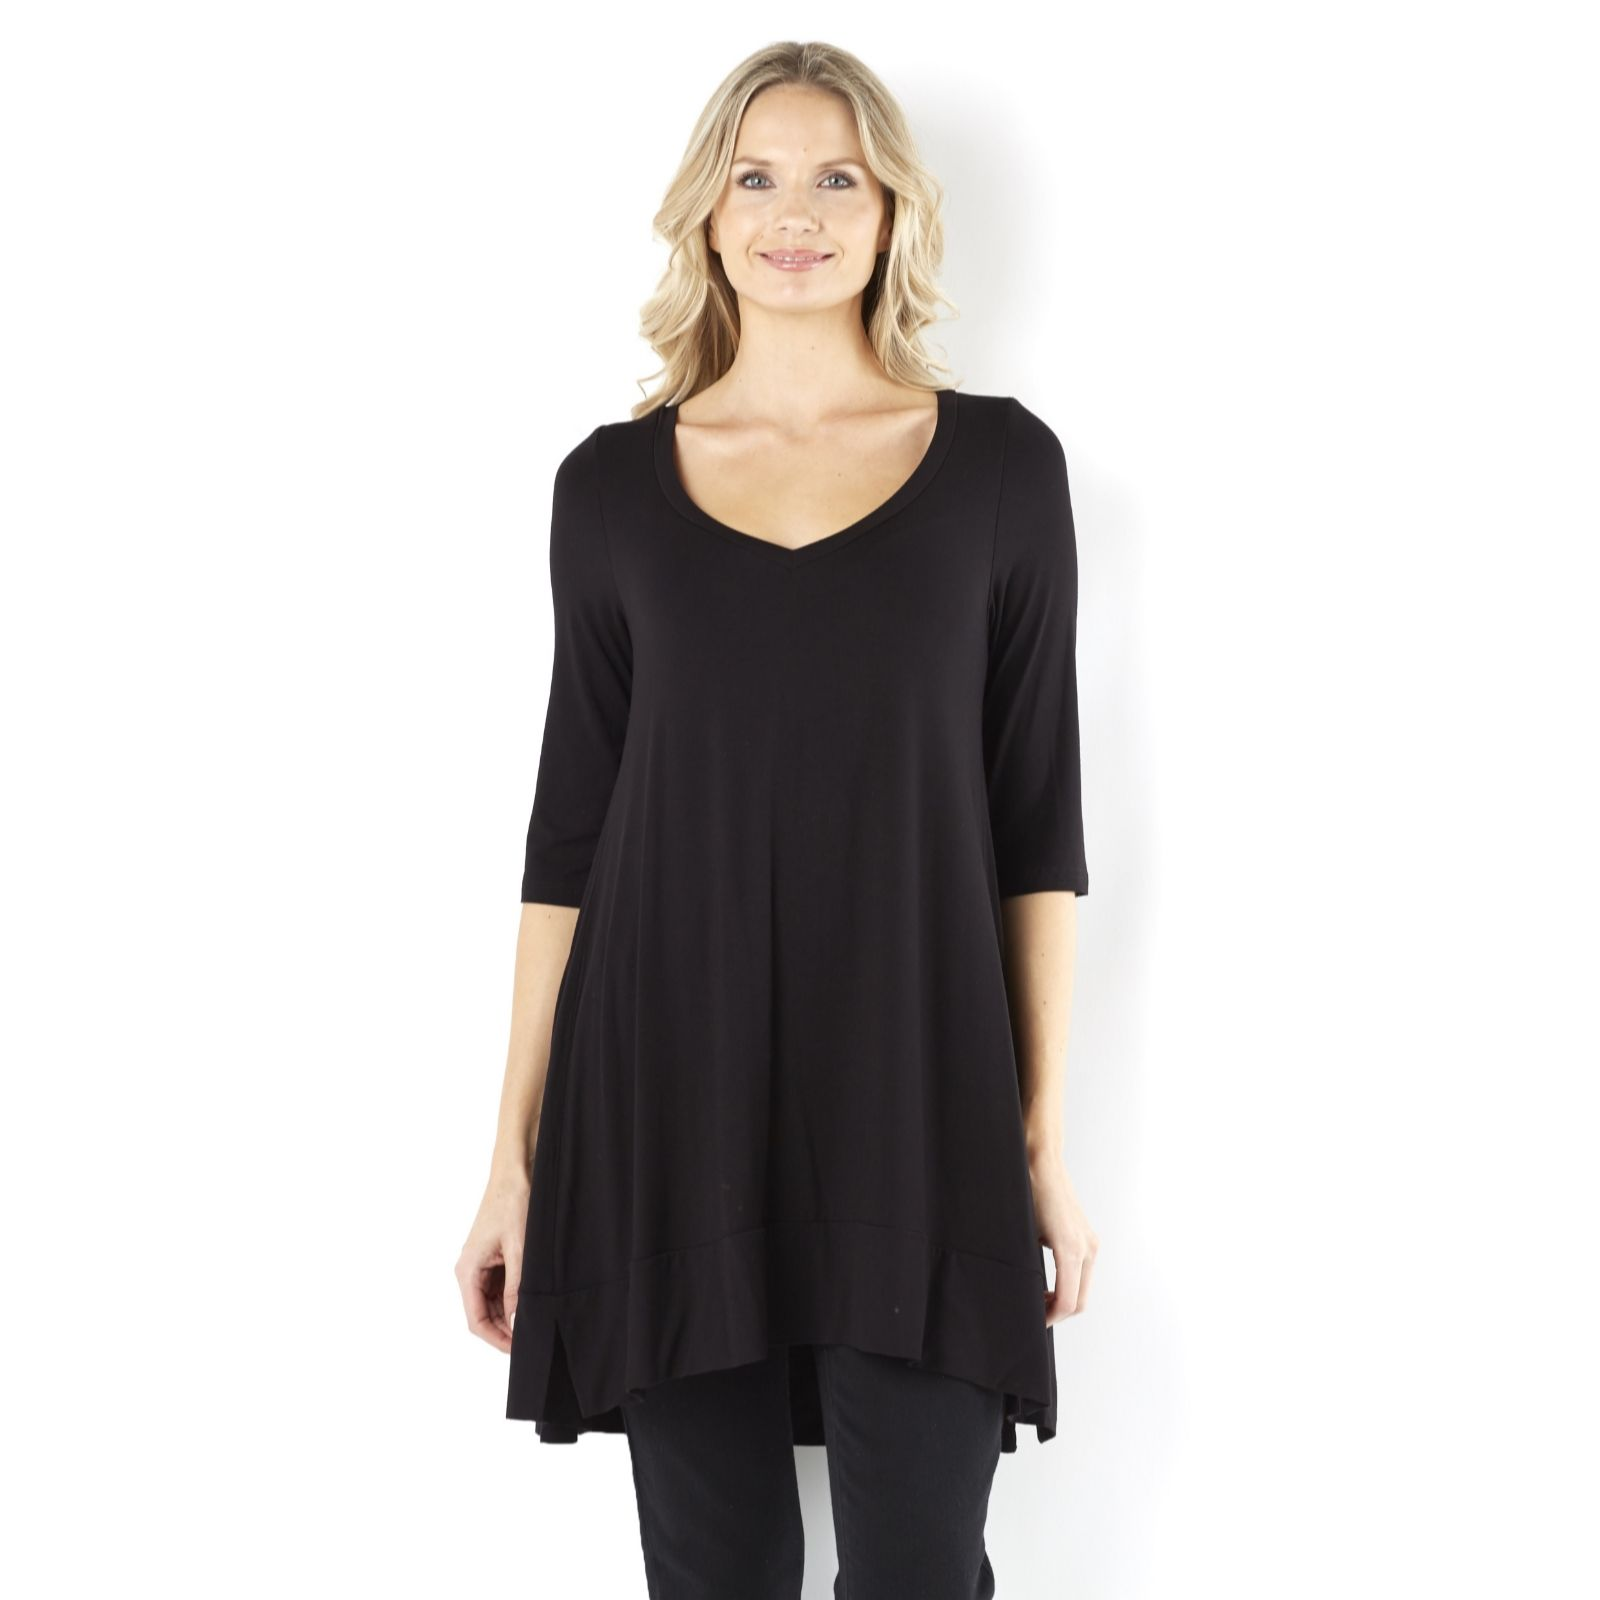 Join Clothes Jersey Scoop V Neck Tunic with Dip Back